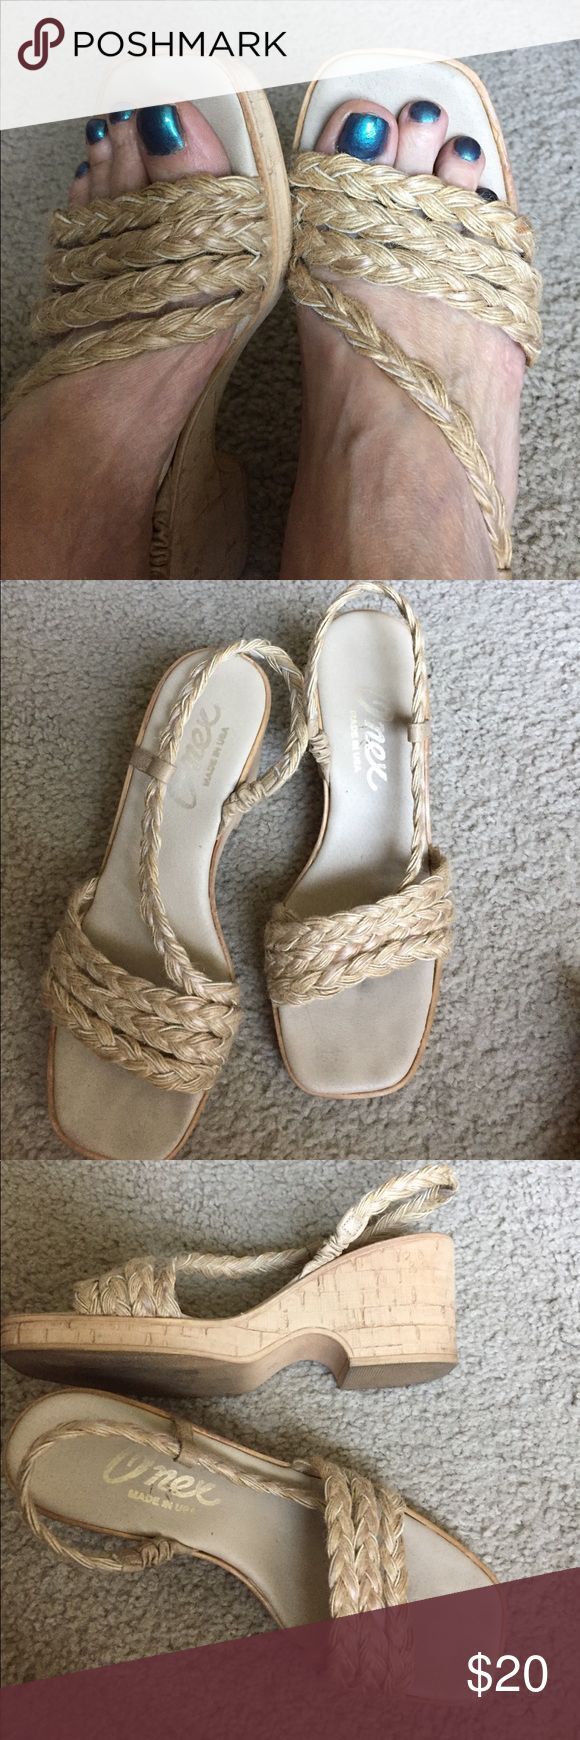 Onex braided jute Platform sandal Straw colored strappy sandal with cork bottom. True to size. onex Shoes Sandals